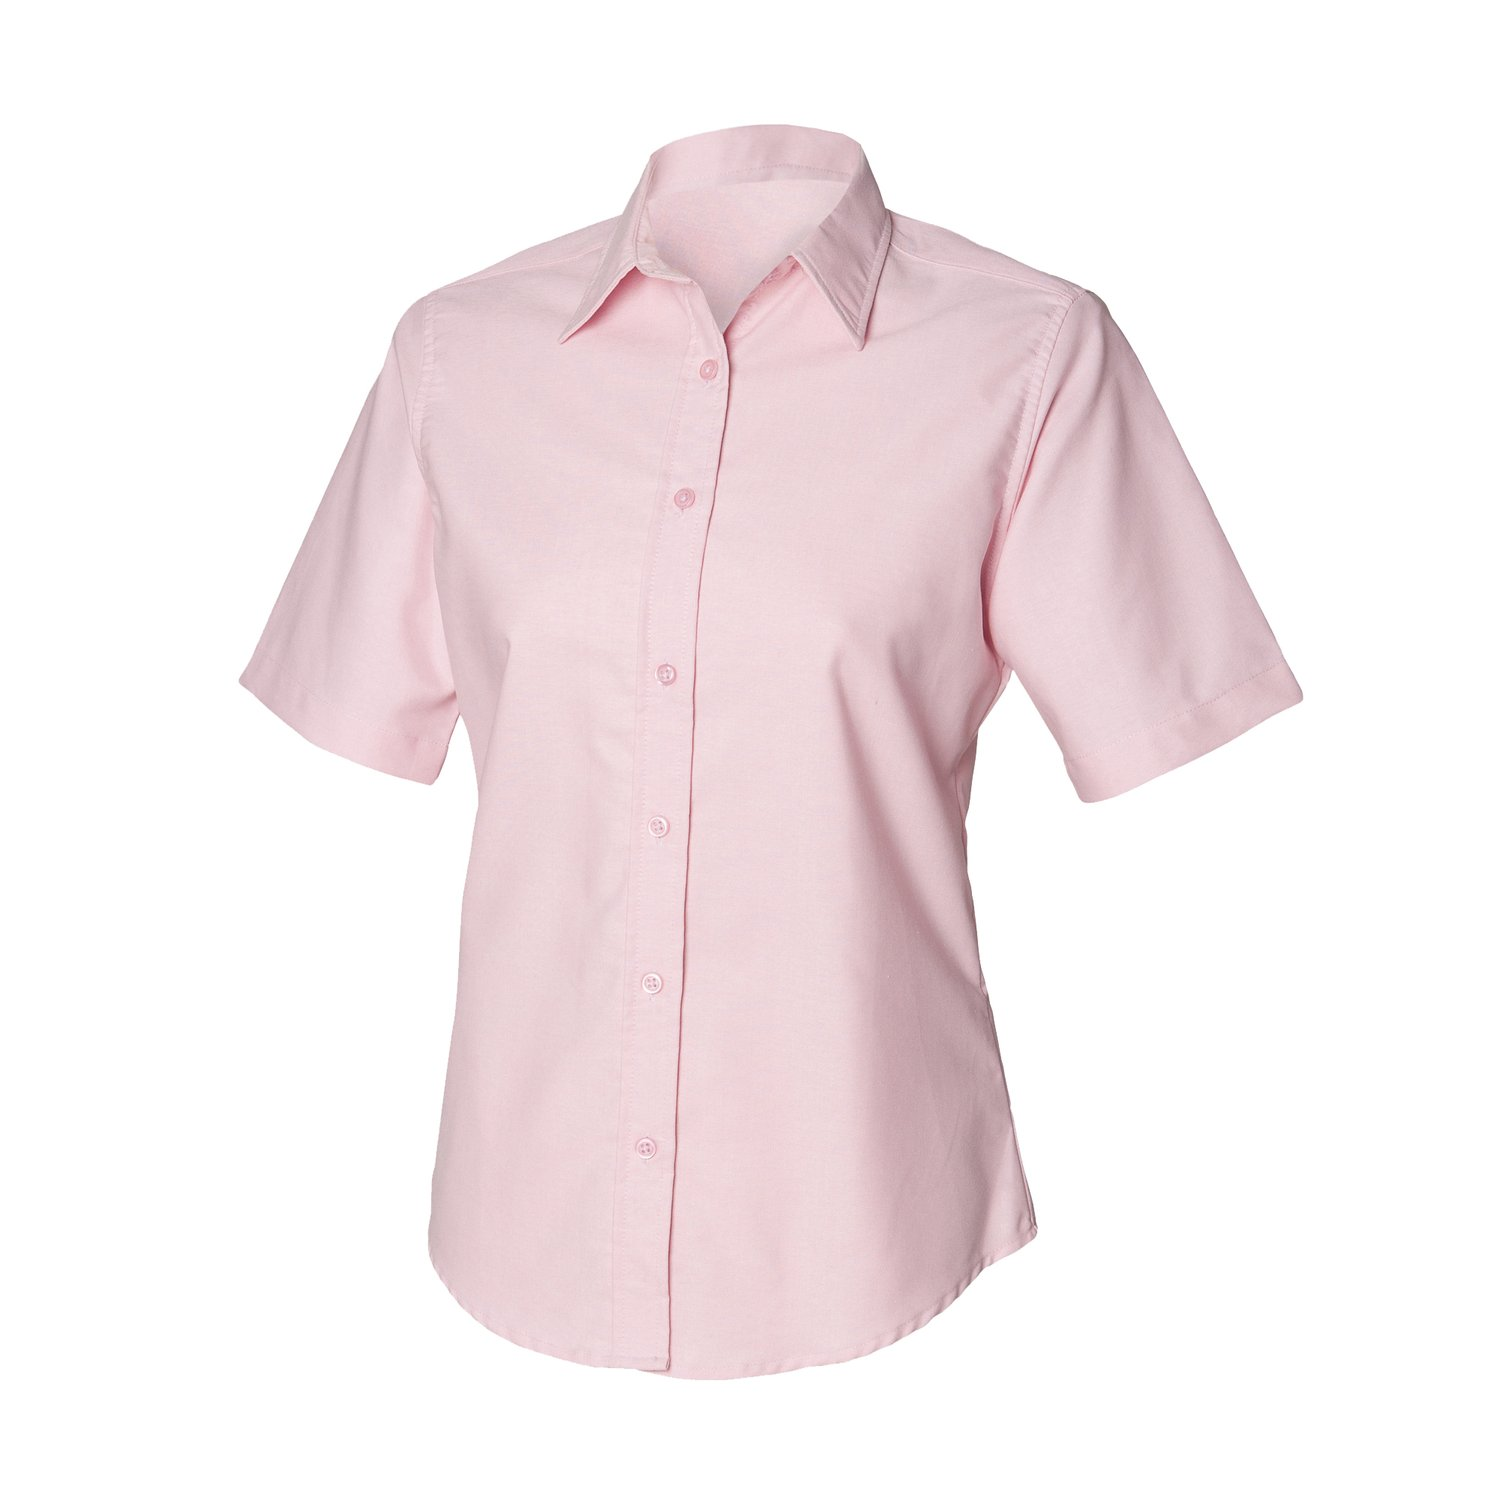 Ladies Short Sleeve Oxford shirt(Open collar) - Code 66444